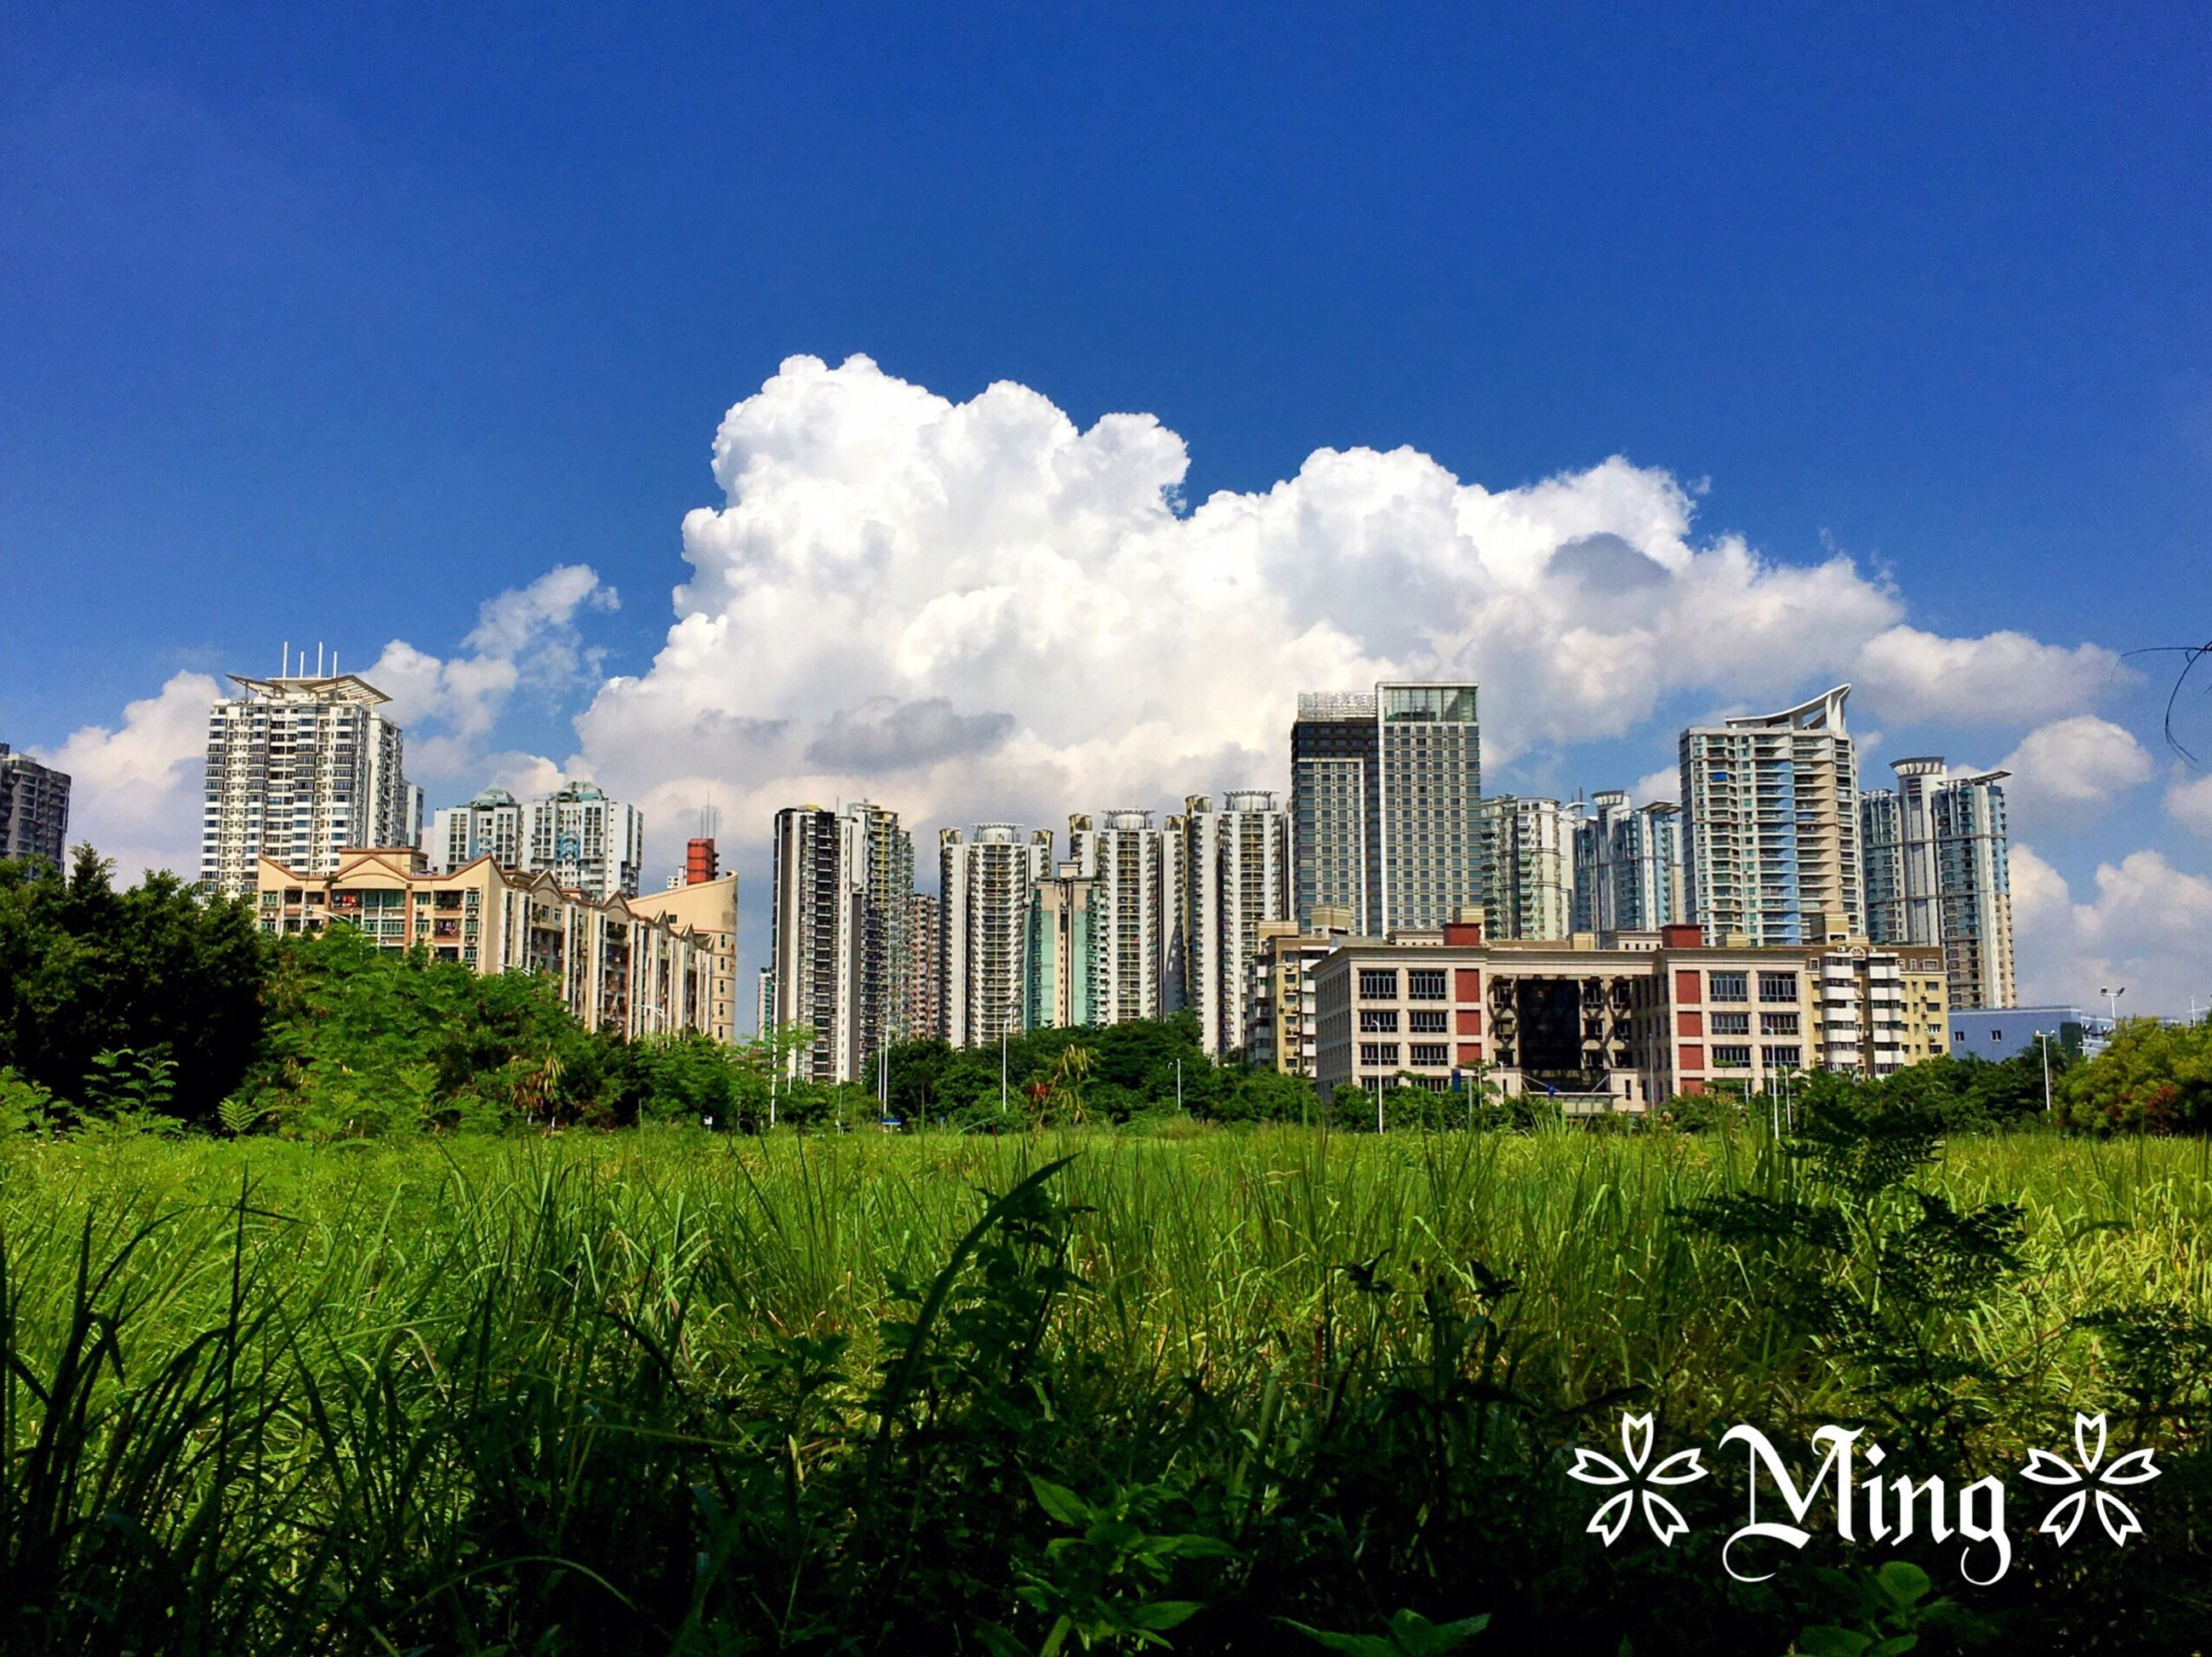 building exterior, architecture, built structure, city, sky, skyscraper, grass, tower, modern, tall - high, tree, urban skyline, office building, blue, cloud - sky, cityscape, cloud, green color, building, growth